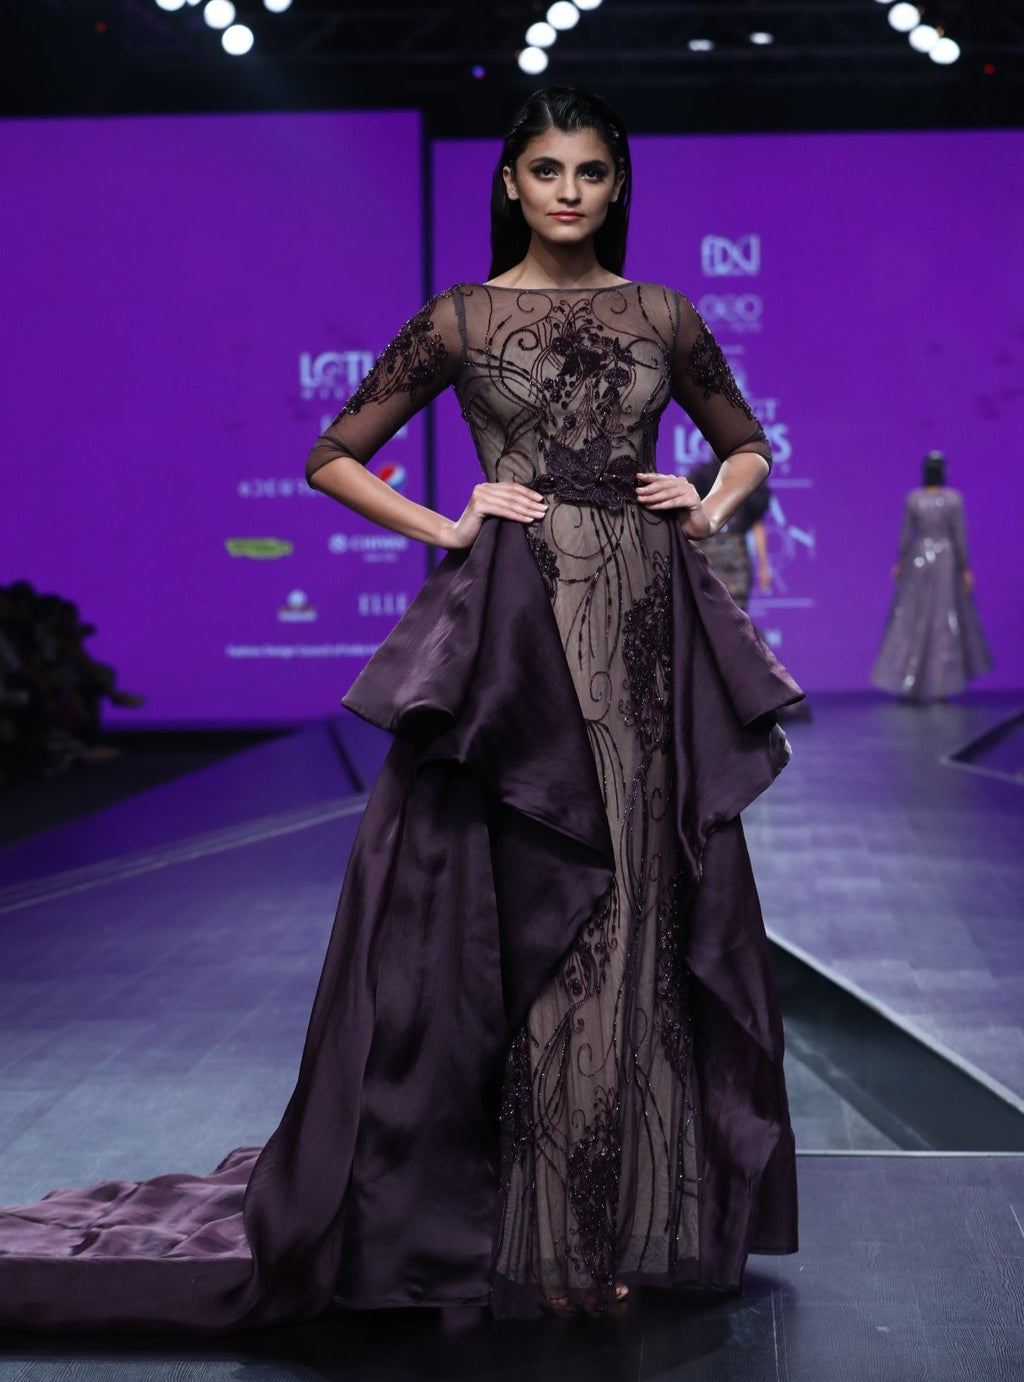 Agt By Amit Gt-Bordeau Gown With Bird Motif-INDIASPOPUP.COM